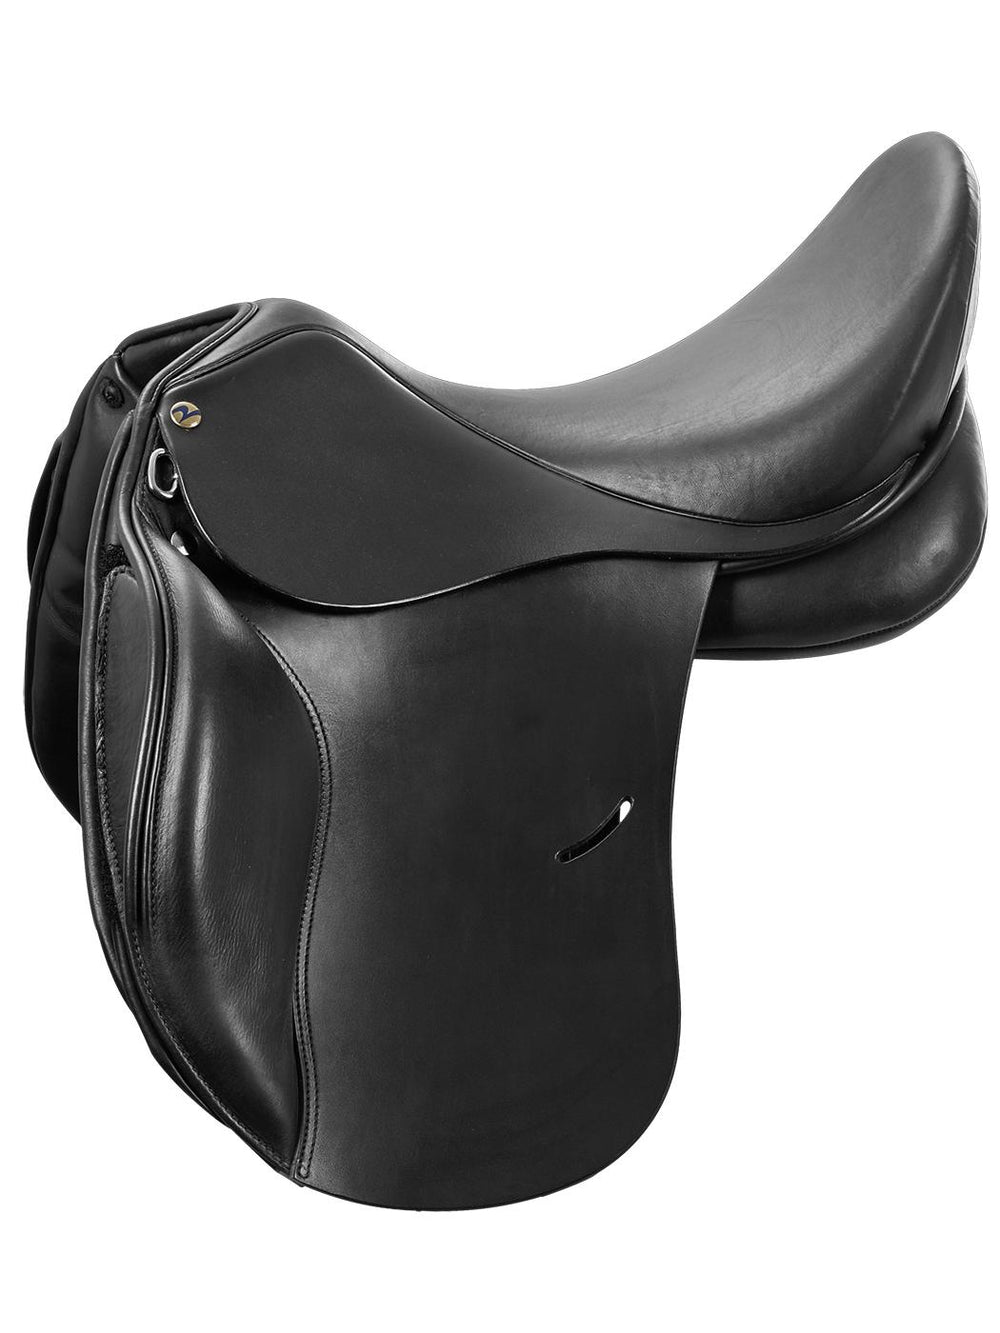 BUSSE Saddle BASEL-FLEXI, black, short flaps